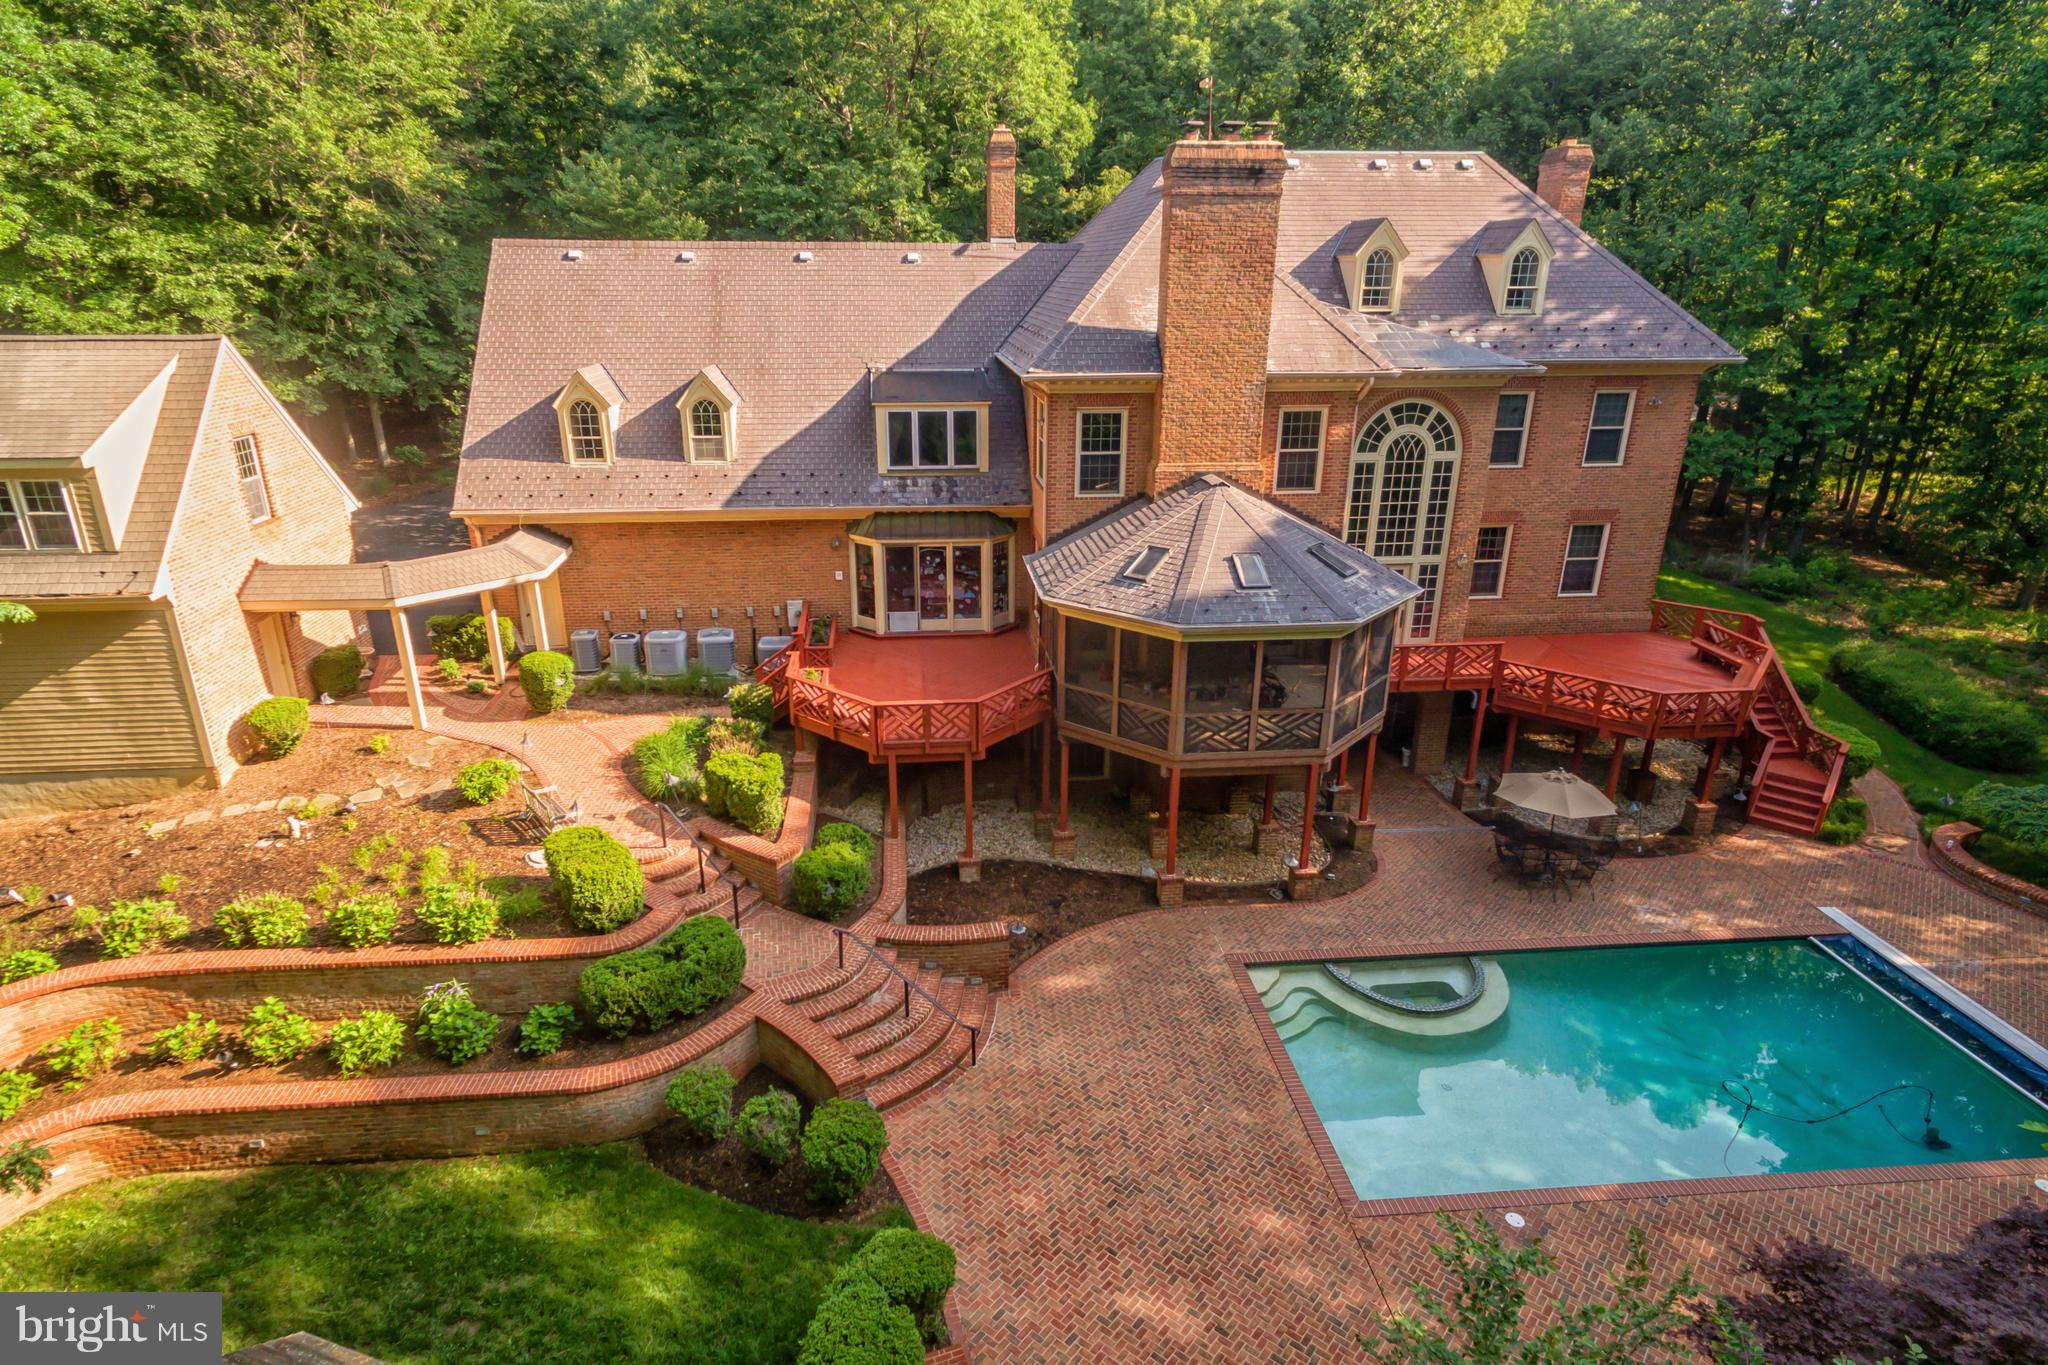 A light-filled Williamsburg styled Colonial Revival mansion on a quiet country lane in Clifton, Virginia, has everything you need for privacy and comfort not far from the city. And the systems running behind the scenes add even more to this home~s unique appeal. Starting with the exterior, 13101 Loth Lorian Drive, offered at 1.95 million, is a picture-perfect, large three-story, brick house with another level below-grade, and has about 12,000 square feet of living space. A double staircase leads to a welcoming front door that is encompassed by a two-story Palladian window, which floods the first-floor and central staircase inside with sunlight. The entry hall and great room of the home are illuminated by two grand chandeliers, plus a fixture in the adjacent dining room sparkles with a multitude of large Swarovski crystals. The home has seven bedrooms, seven bathrooms and two half-baths. A second, two-story Palladian window opposite the one on the fa~ade allows for panoramic views of the pool and surrounding woodlands.  (Some have noticed a resemblance between the home and Long & Foster~s Chantilly, Virginia, headquarters, which also is designed in the early American style.)The current owner, added a three-car garage with an au-pair suite, blending it seamlessly with the existing architecture. Other enhancements can~t be seen but perhaps are detected in the air. He also purchased a system that brings in outdoor air, scrubs it through a filtration system, and exchanges it with stale indoor air to keep the dust down, making the air so clean that it doesn~t give your upper respiratory tract a beating.  Being an ENT Surgeon, he does know what he was doing to make the air as clean and fresh as an operating room.  Other improvements included four steam humidifiers, a whole-house vacuum system, two tankless gas water heaters, and extra attic insulation. The home also has two enterprise-level wifi hotspots and a firewall, to aid with conducting business securely over the internet from home.  Additionally, they installed a whole-house generator that can power the entire property including the pool, along with a battery backup that can run the house for 24 hours if the main system fails.Situated 28 miles west of Washington, D.C., on five acres, the property has ample outdoor entertaining space. Two large decks and a screened gazebo overlook the pool, which is surrounded by terraced landscaping and a brick patio. An Otis elevator to all 4 levels, makes it easy to transport refreshments and accoutrements for entertaining from the kitchen to the lower-level pool and patio.